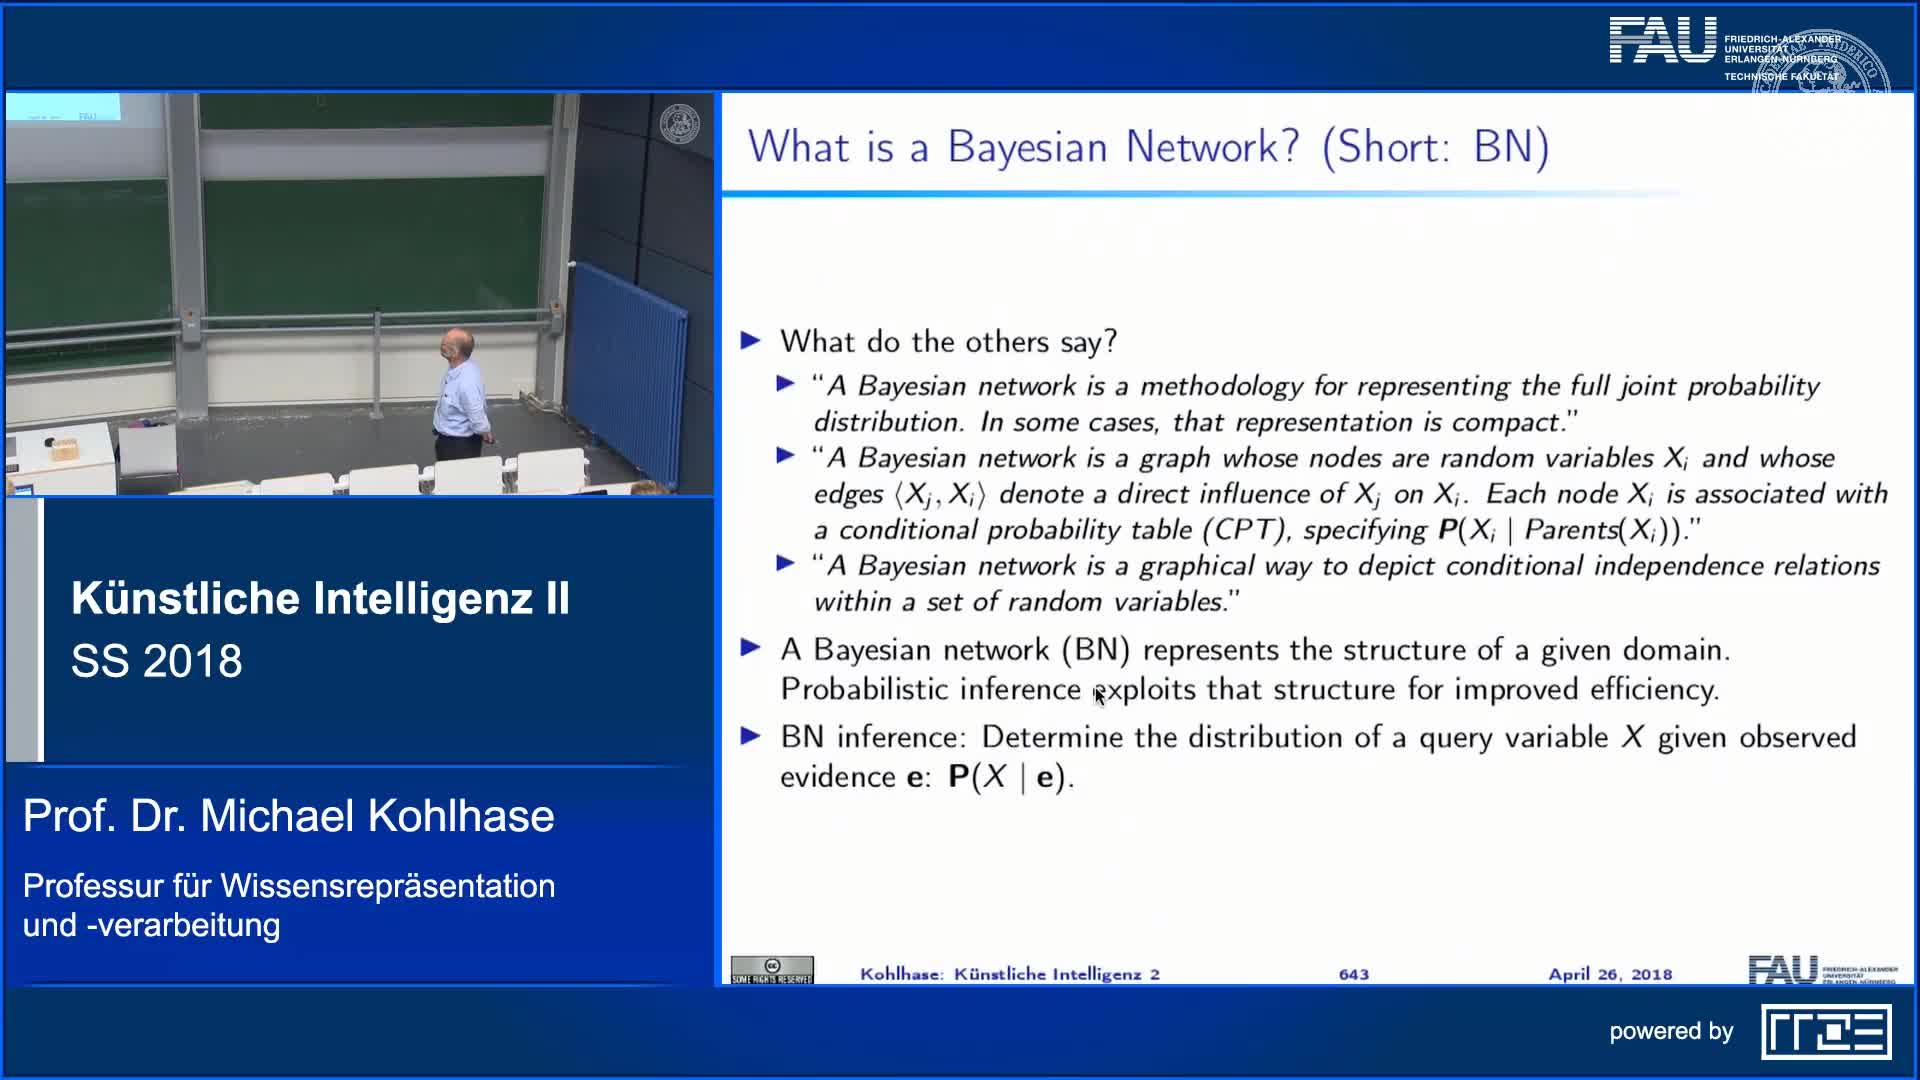 21.2. What is a Bayesian Network? preview image